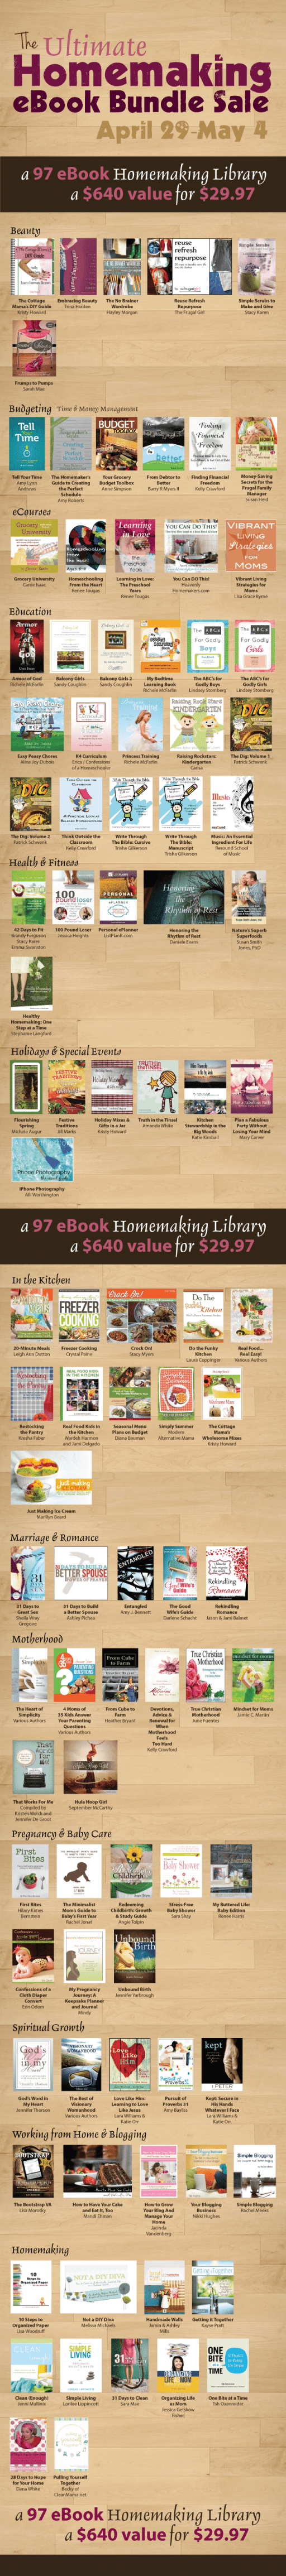 Ultimate Homemaking eBook Bundle collage | ListPlanIt.com